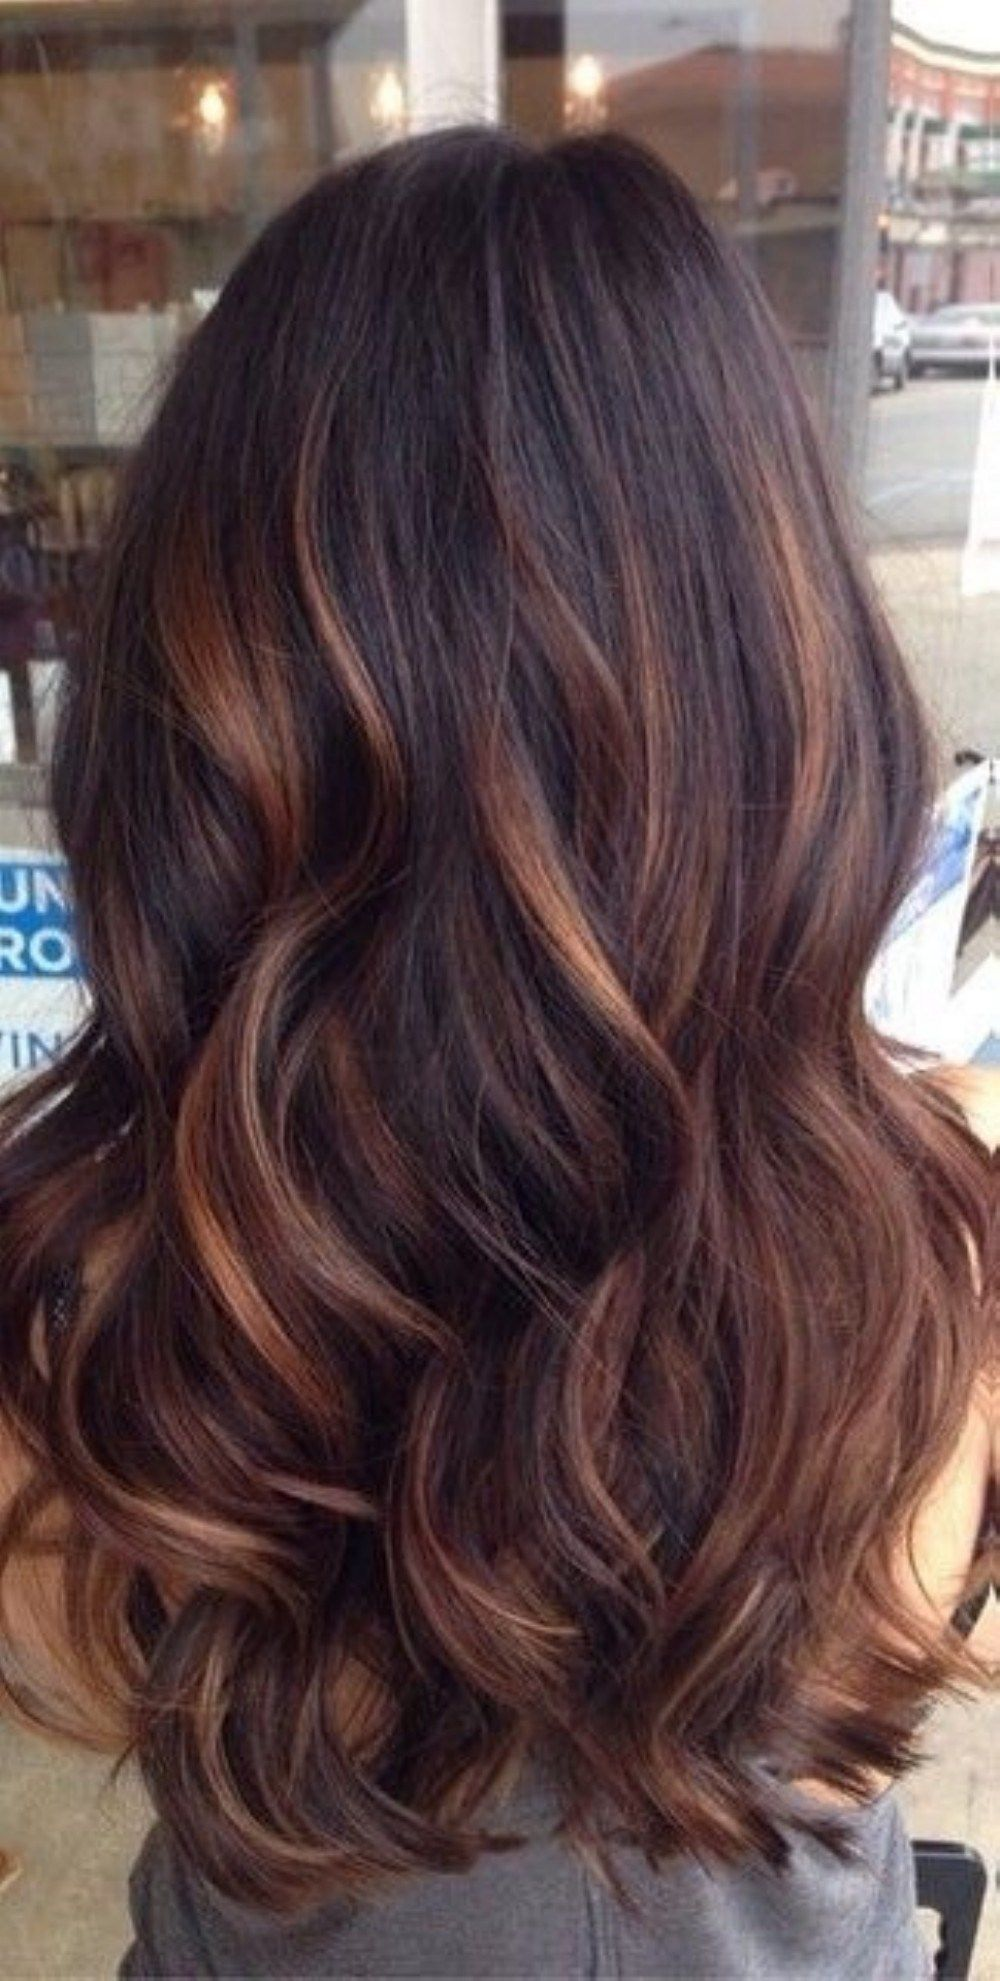 Top brunette hair color ideas to try 2017 (10) | hair | Hair, Hair ...